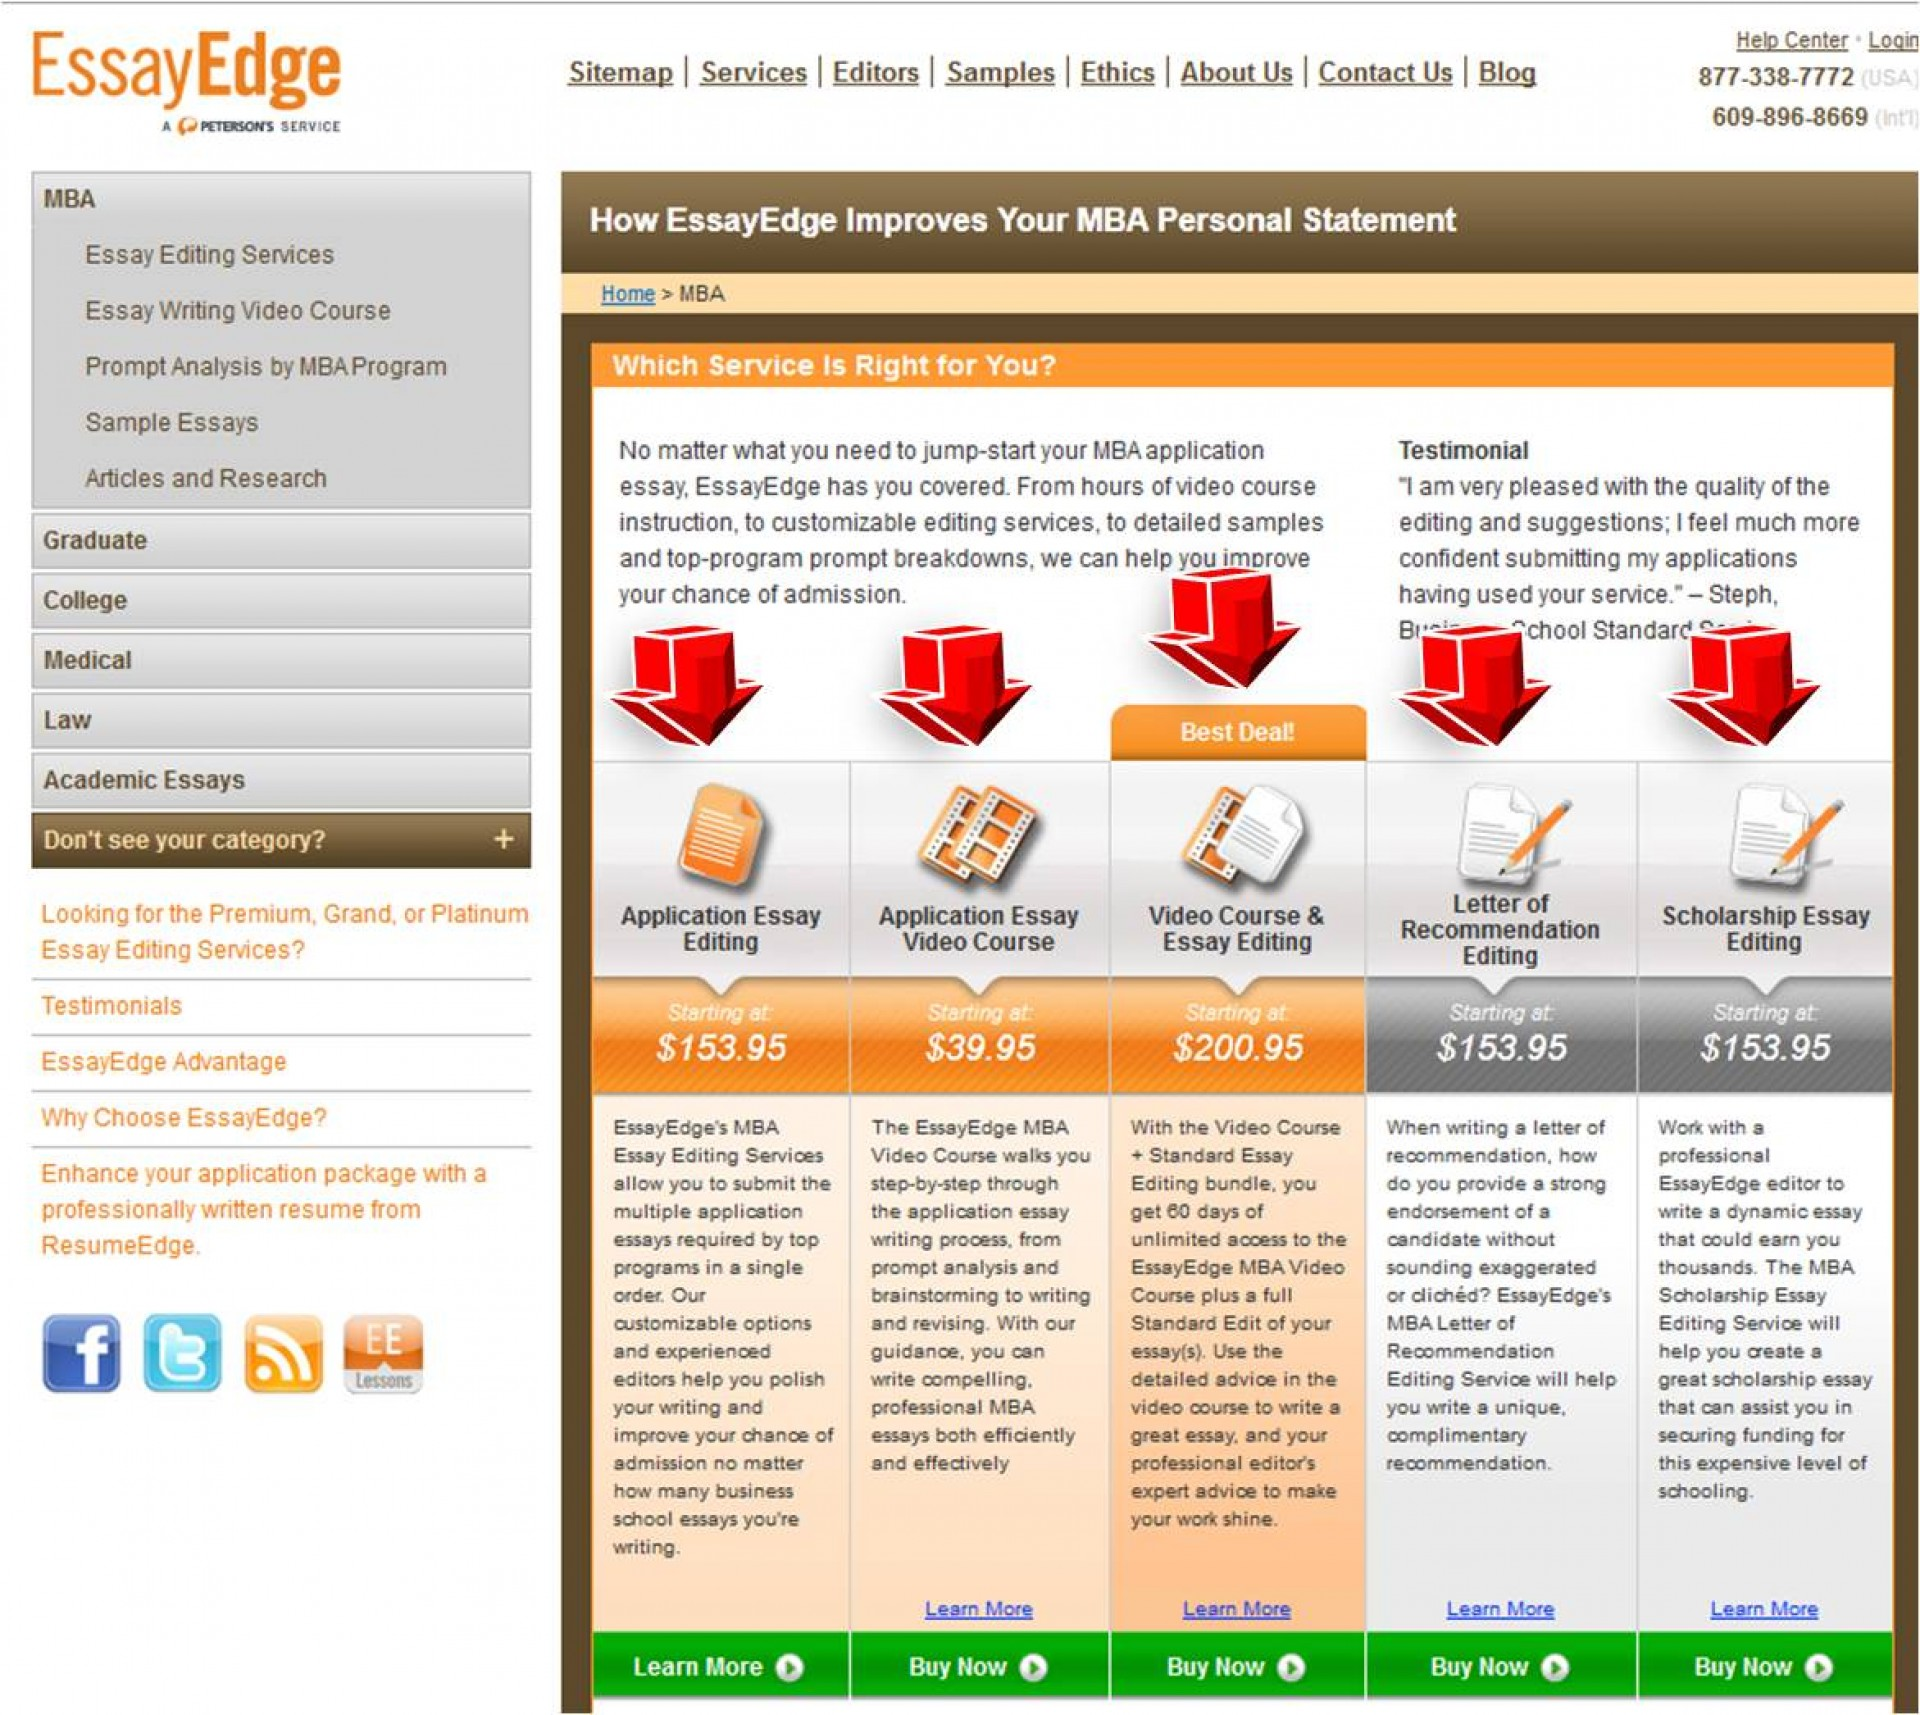 015 Essay Edge Step2 To Enter Essayedge Coupon Unusual Review Code 1920